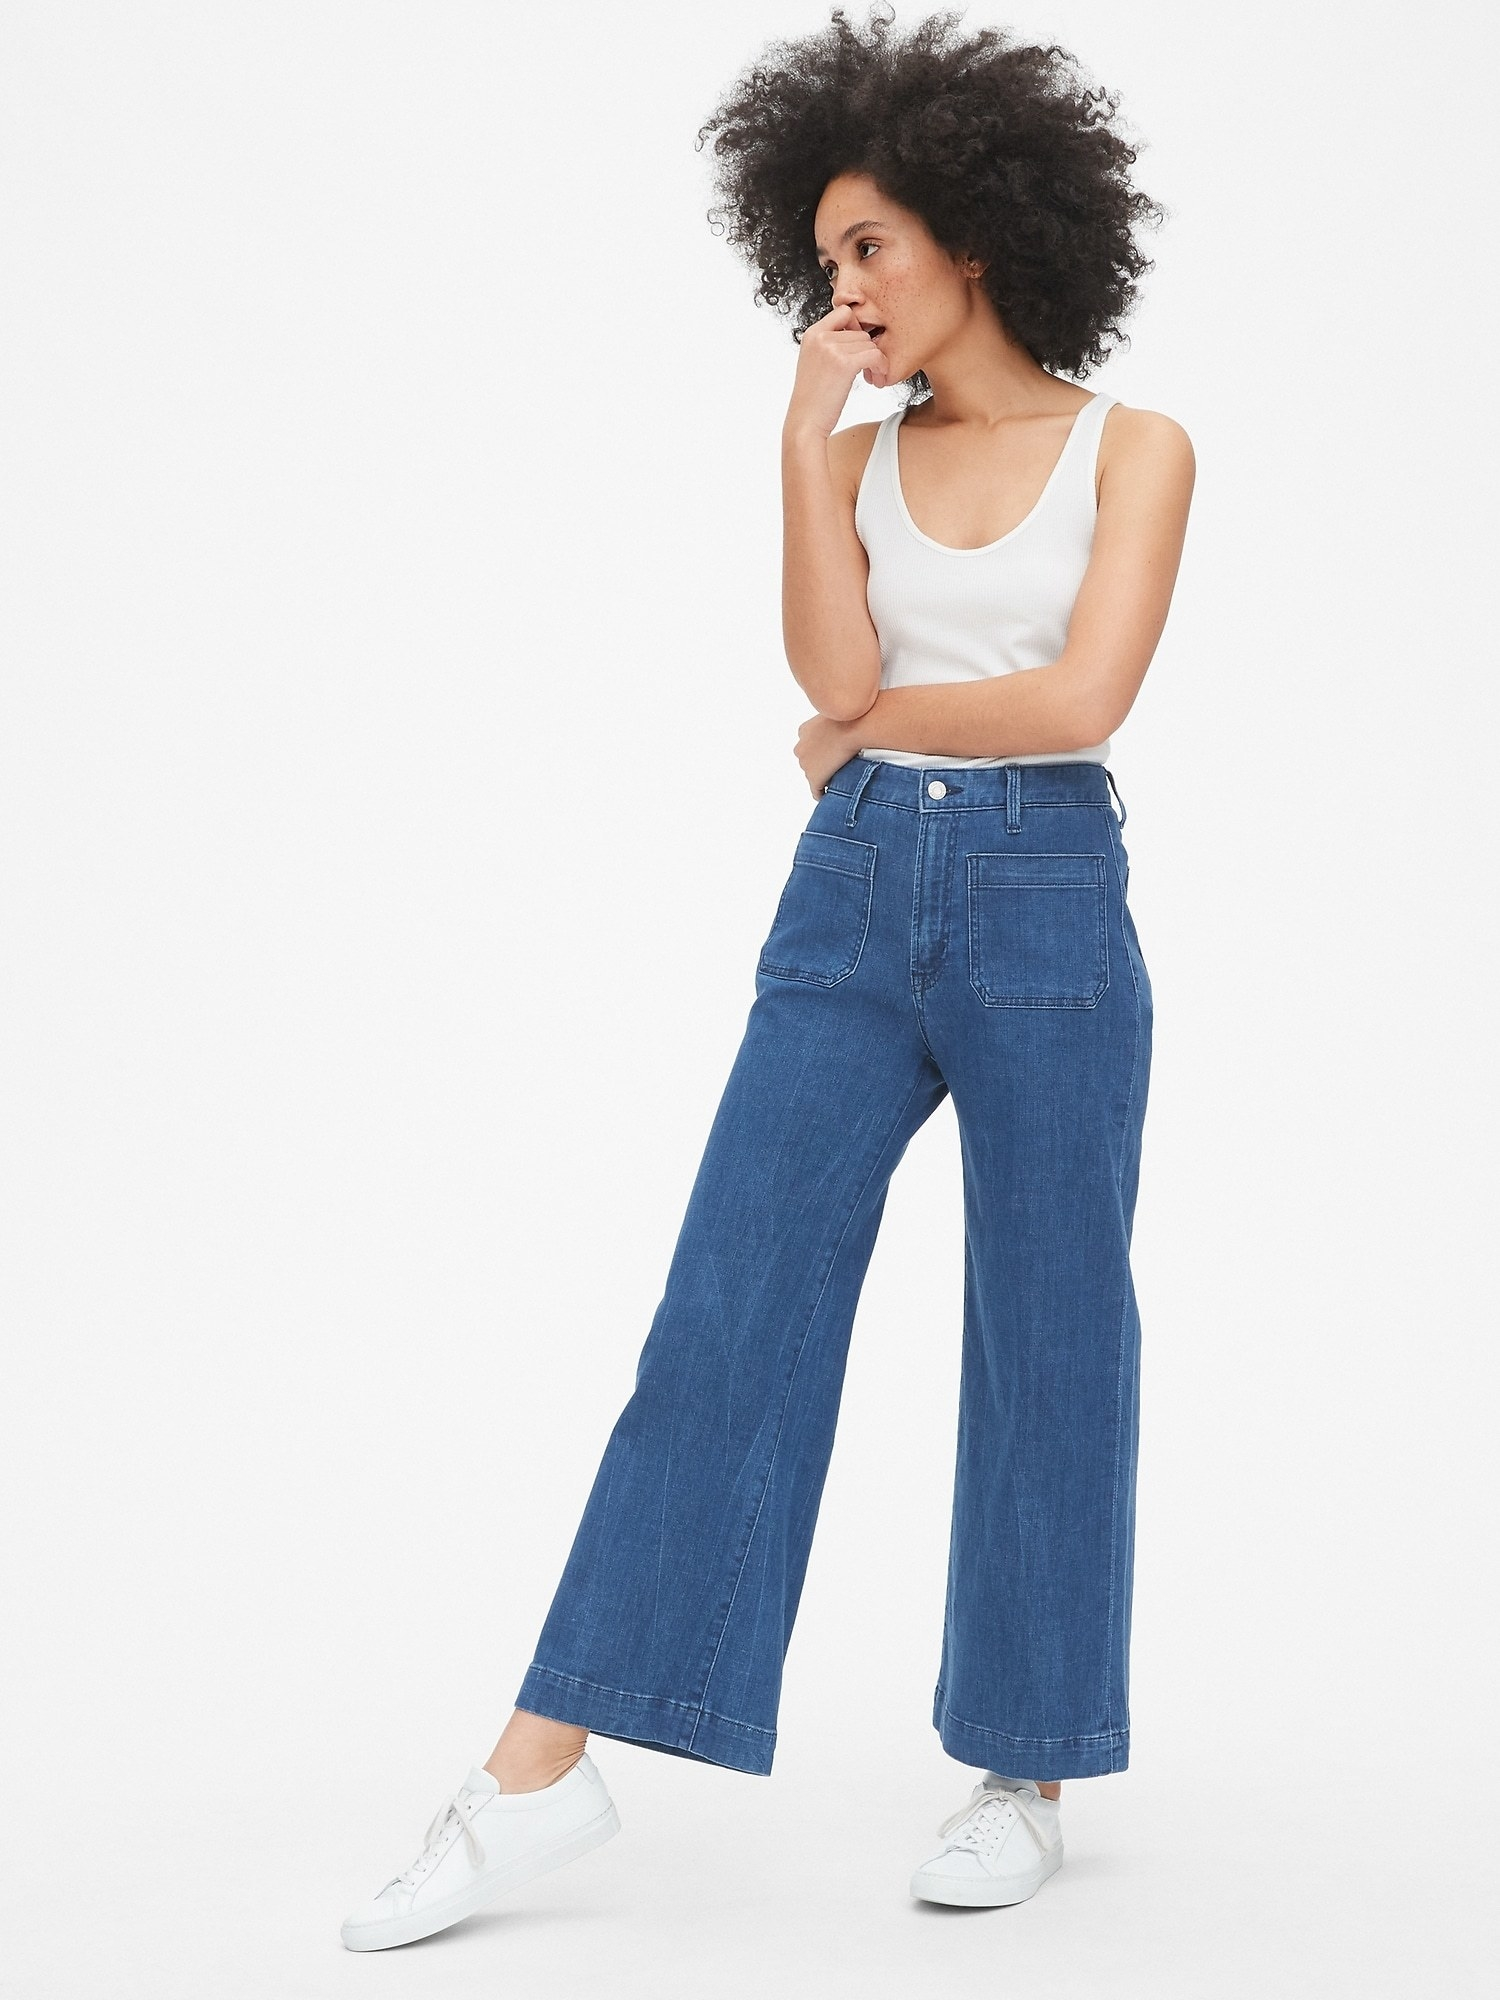 20 Pairs Of Pants For People With Long Legs-4700